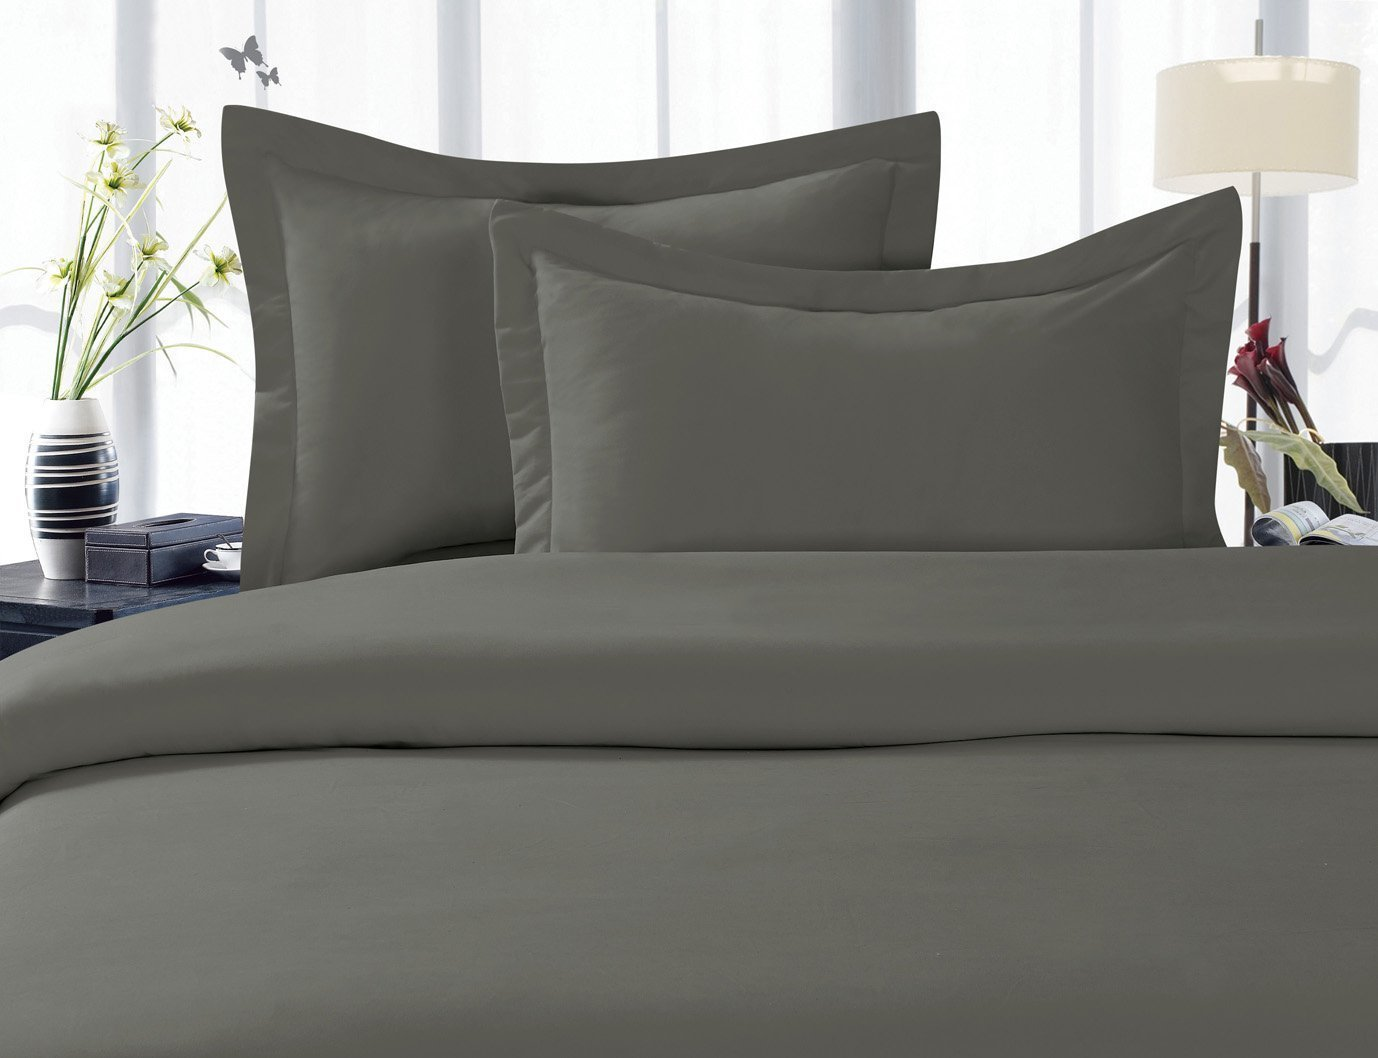 Elegant Comfort 1500 Thread Count Wrinkle,Fade and Stain Resistant 4-Piece Bed Sheet set Full Grey